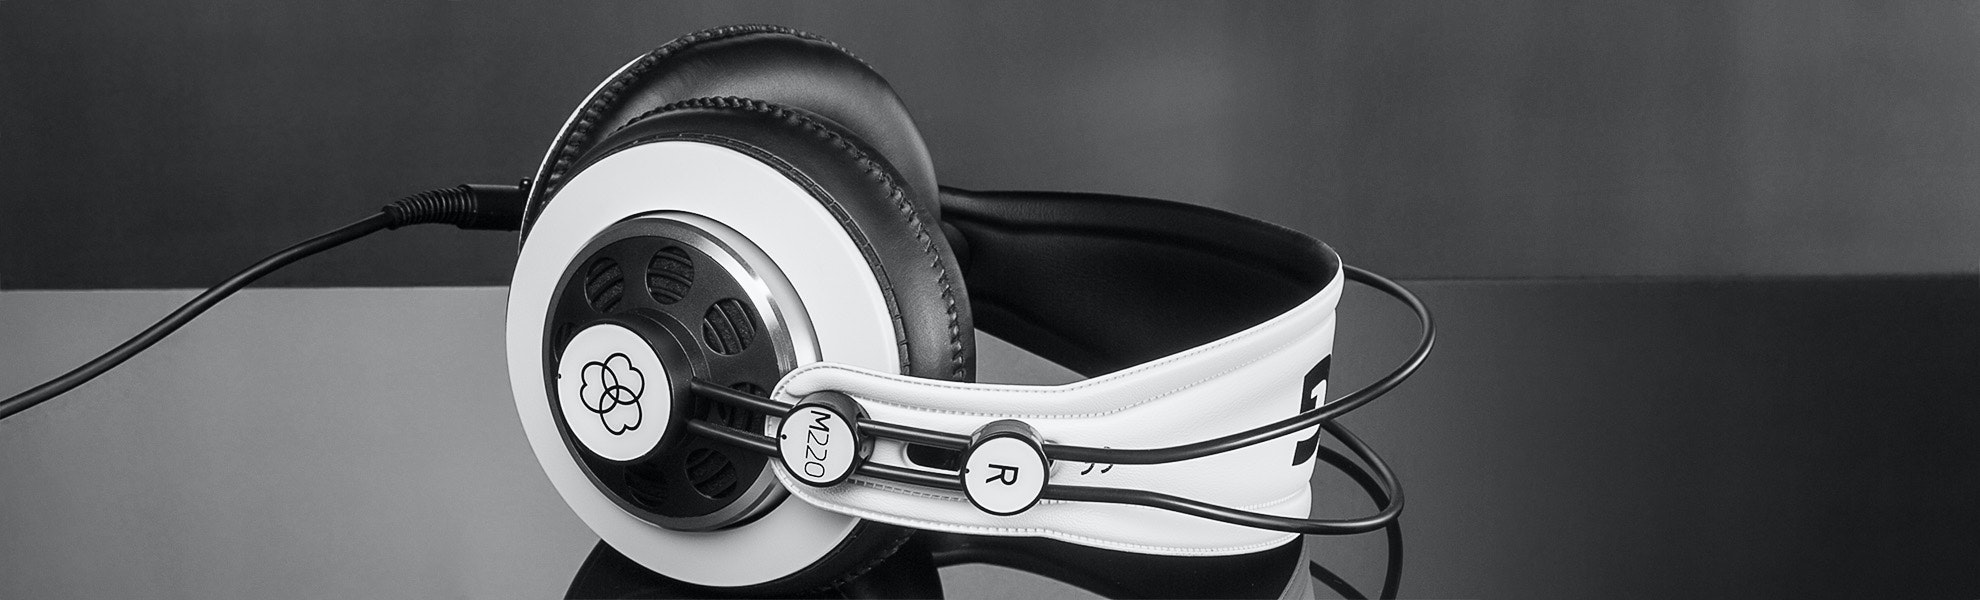 AKG M220 Semi-Open Studio Headphones